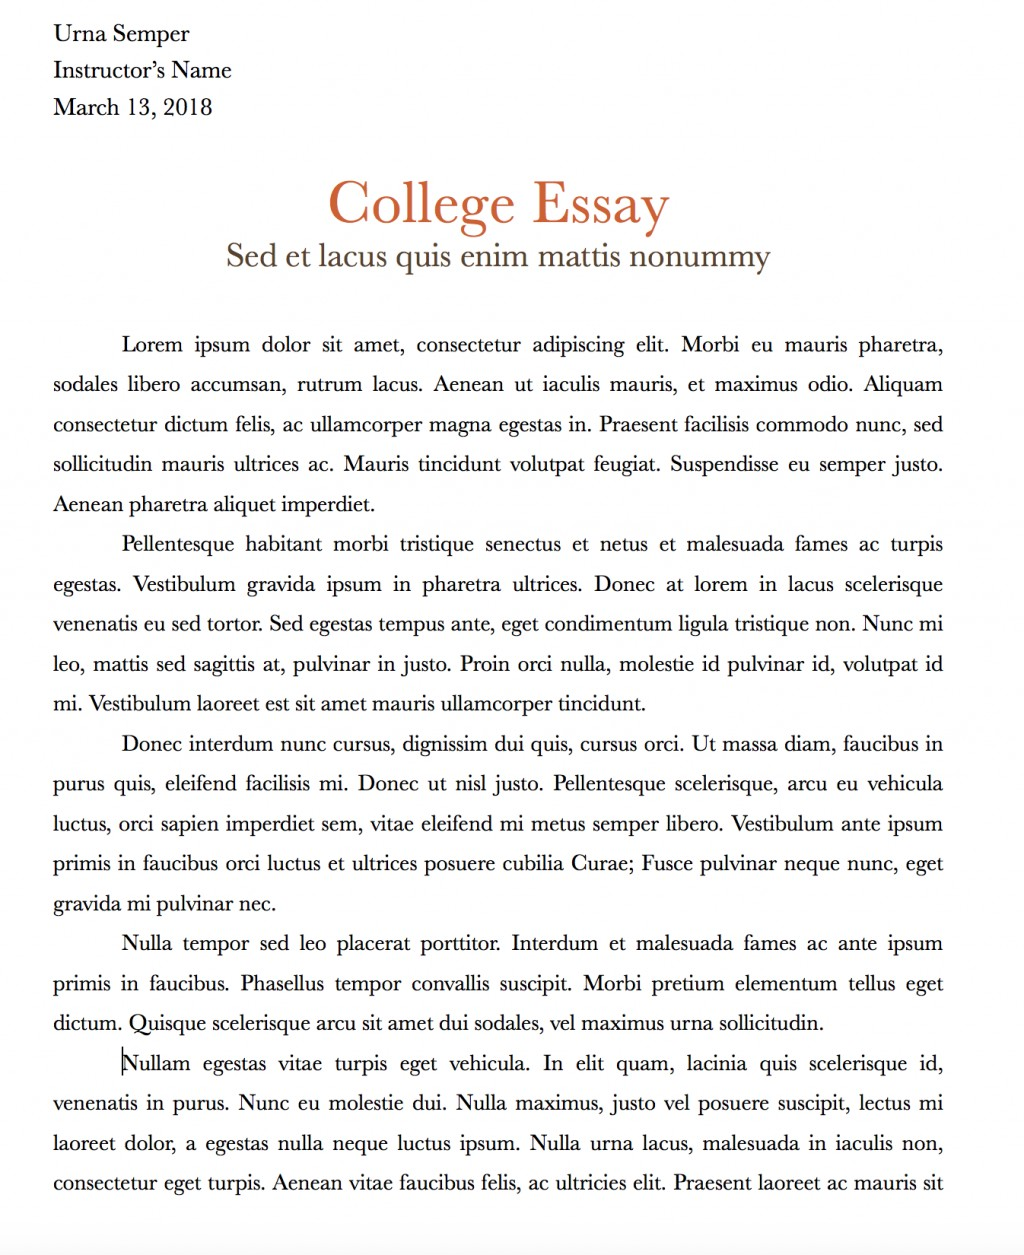 001 What Makes You Unique Essay Example How To Write An Interesting And Captivating College Application Ctwrvkoshcimzkxyhyl8 With Parag Sensational Examples Mba Question Large